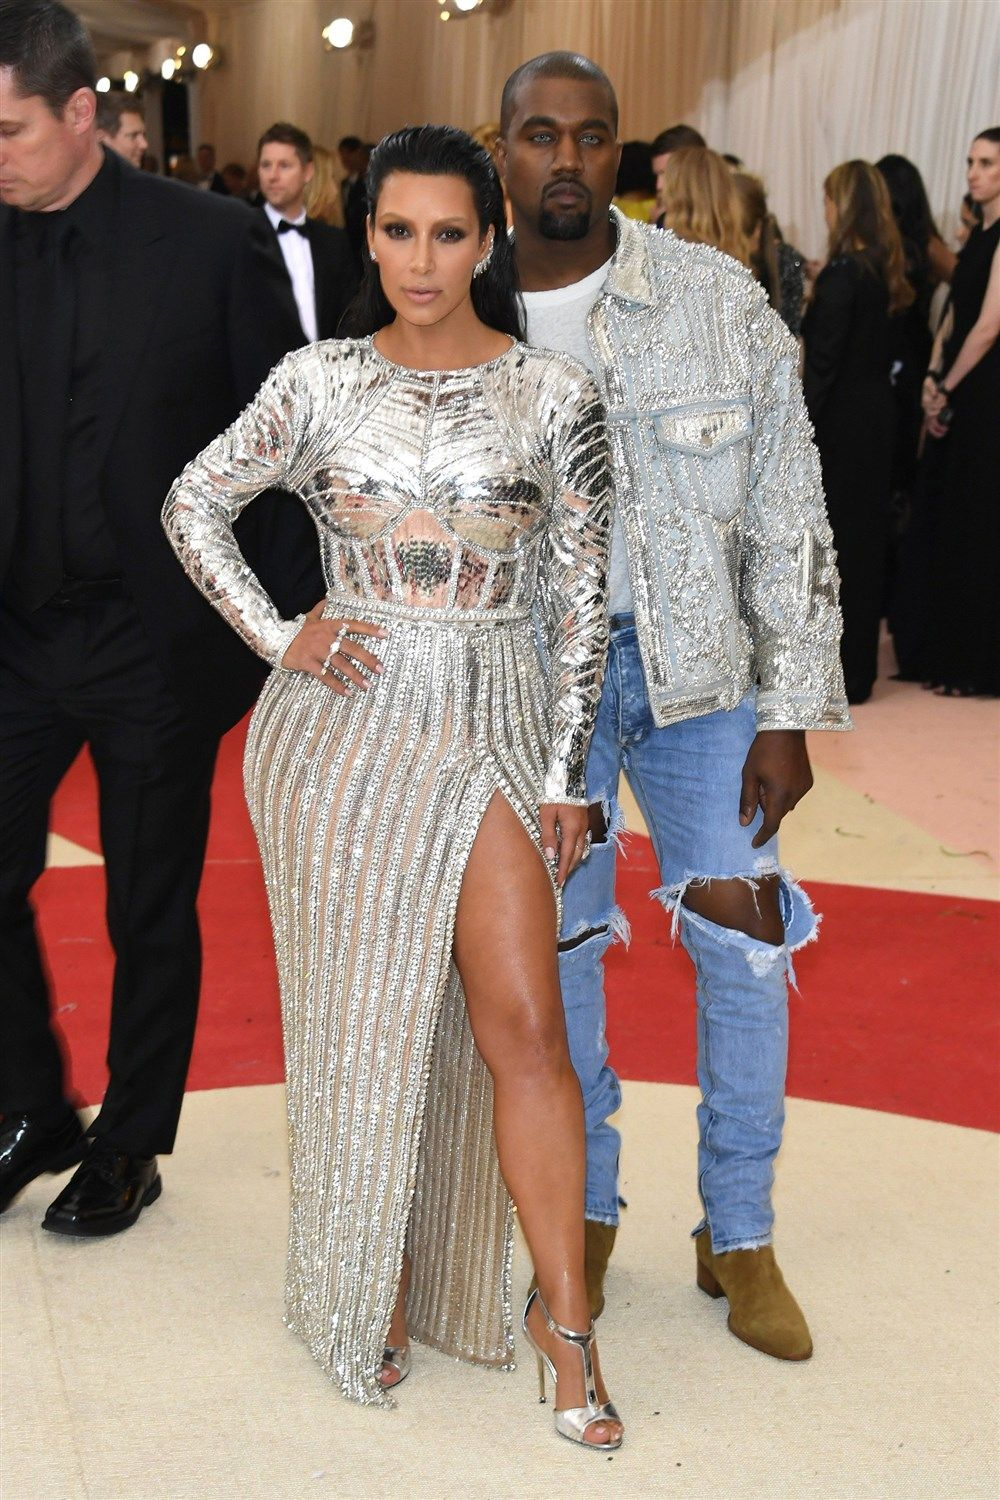 Met Gala Celebs Shock And Awe With Space Age Outfits Met Gala Outfits Met Gala Looks Gala Outfit